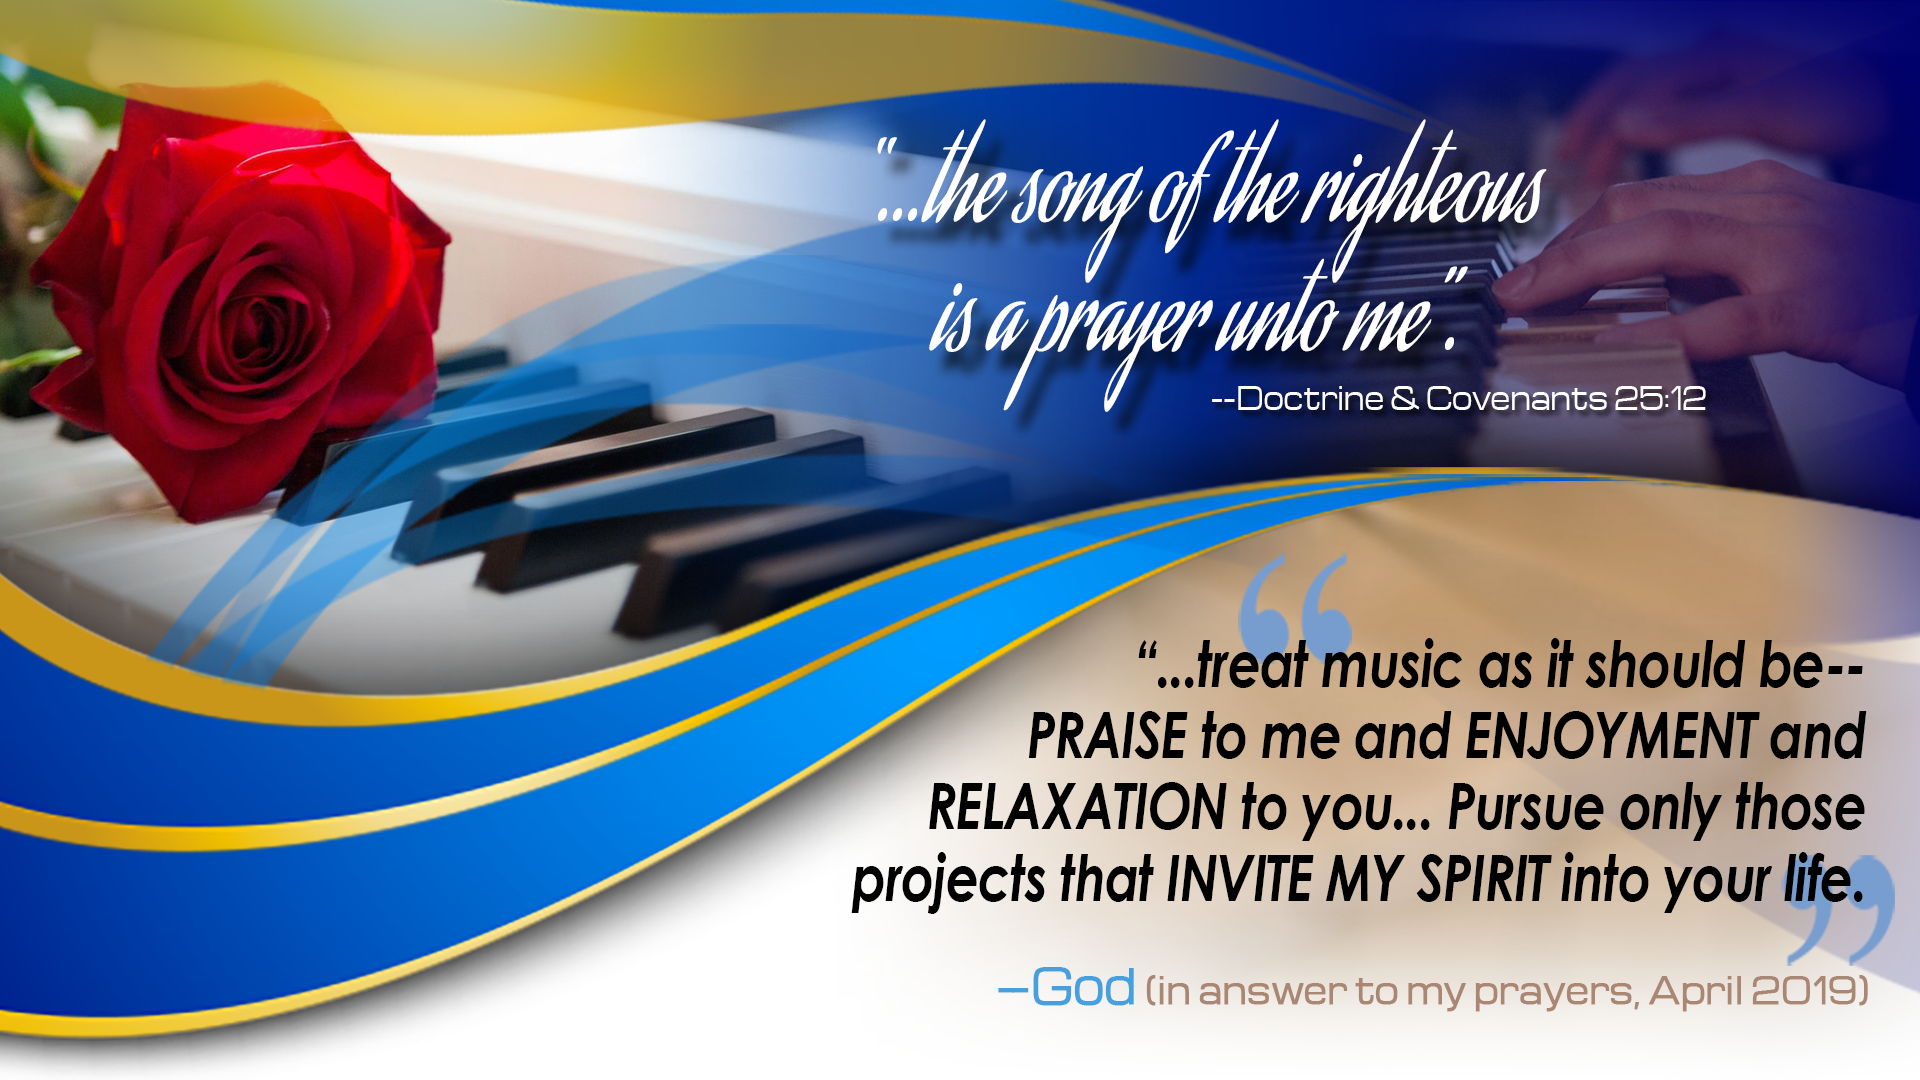 The Song of the Righteous…